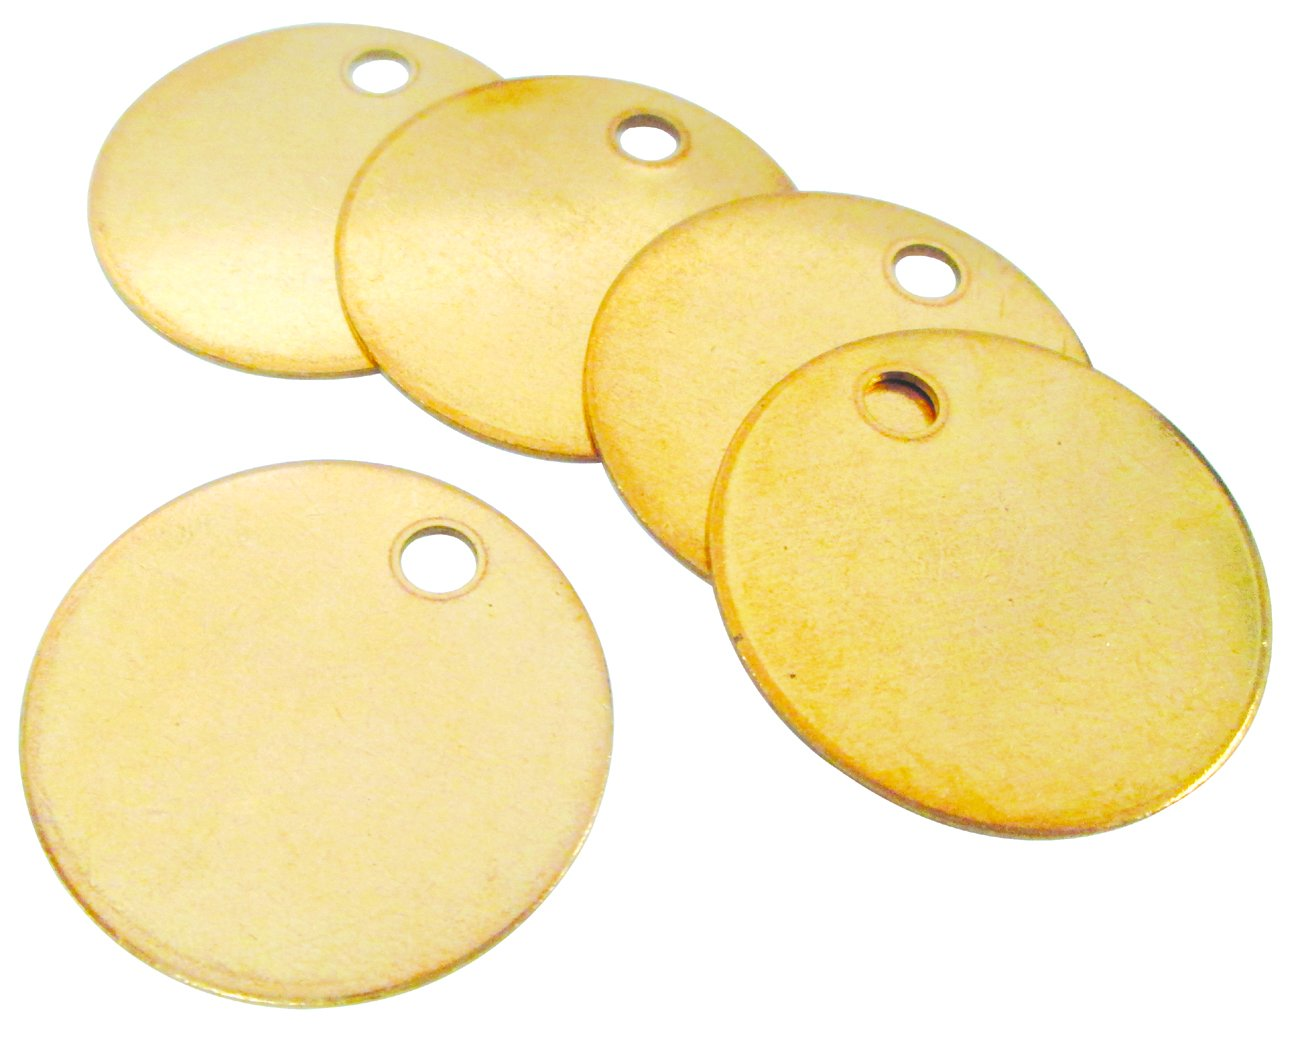 CH Hanson Blank Metal Tags - 1-1/4'' Round with Hole, Brass 18 Gauge, Model 1090B - Pack of 100 by CH Hanson